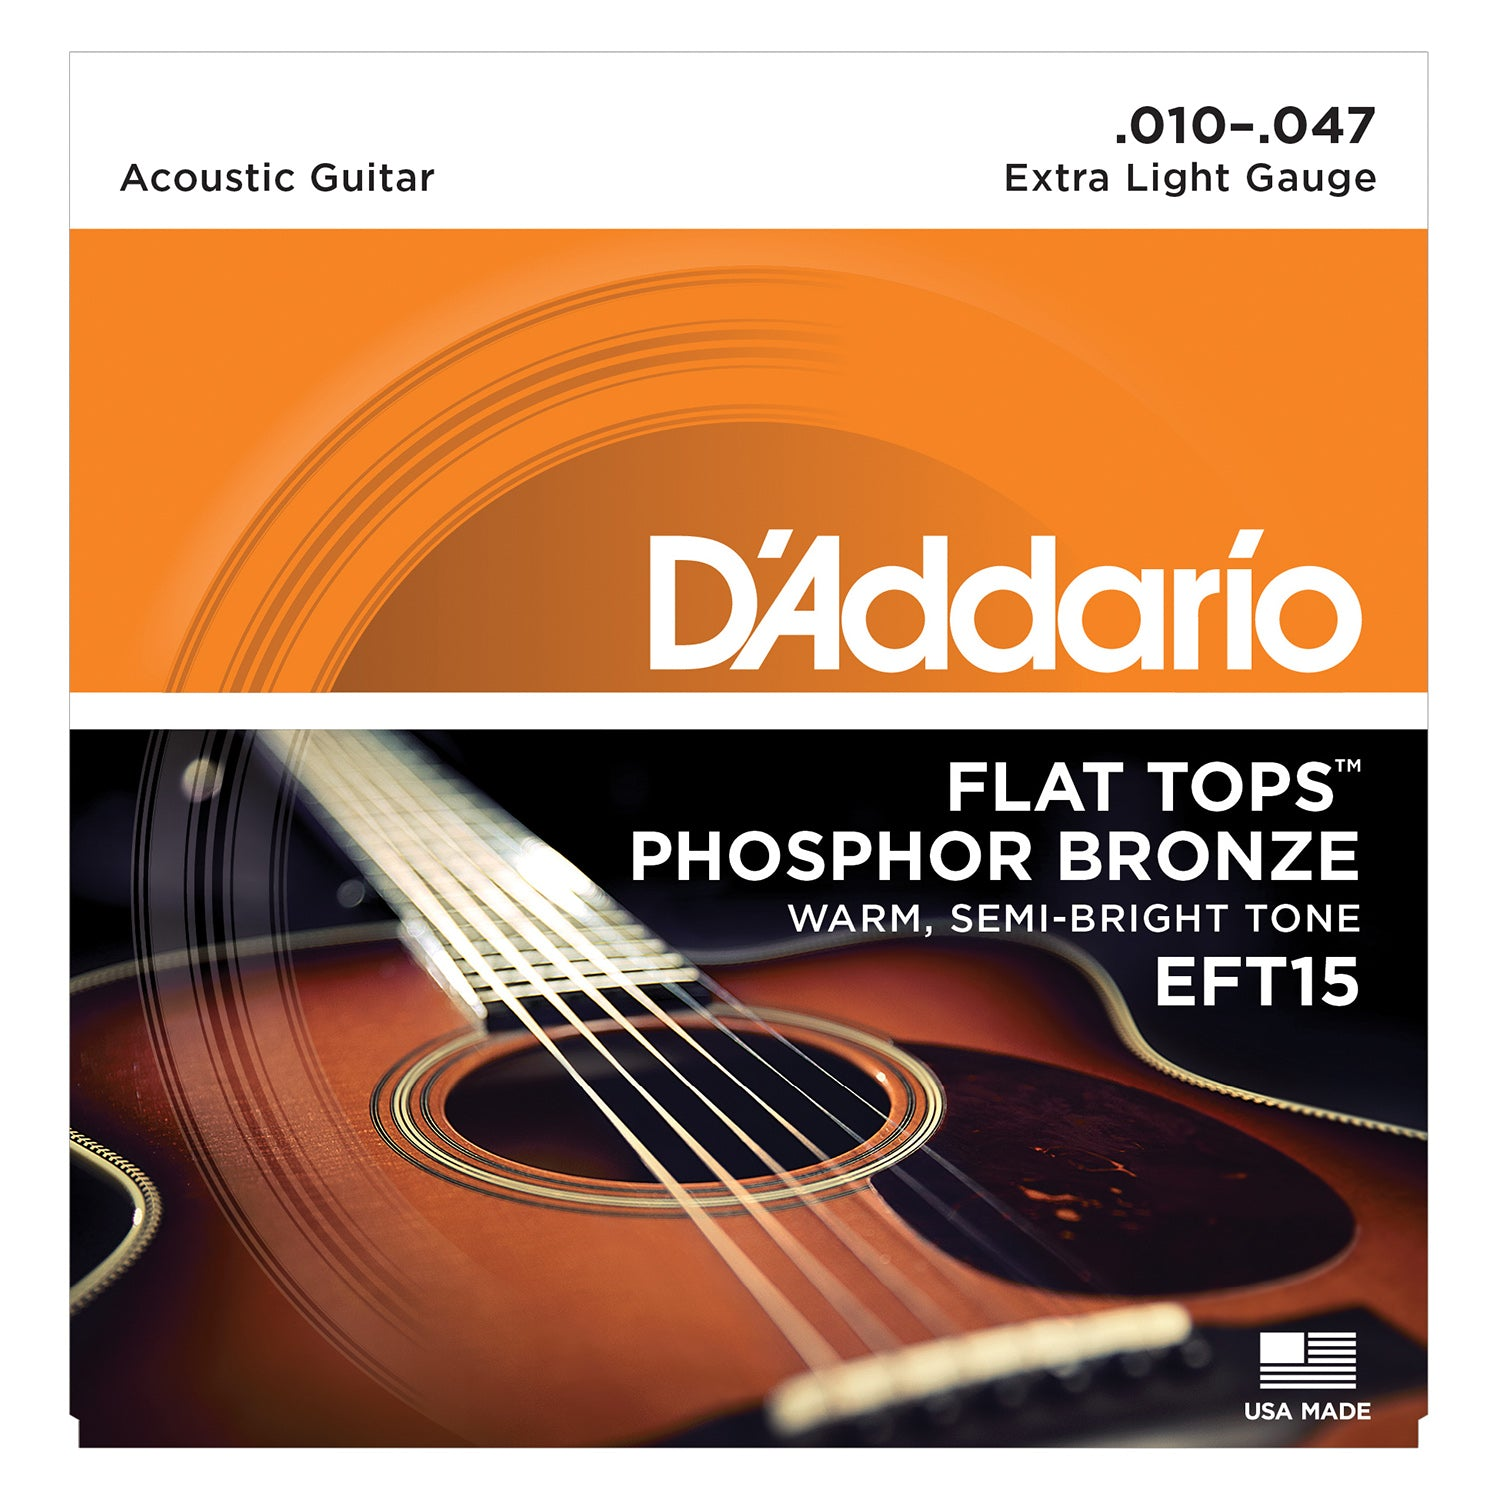 D'Addario EFT15 Flat Tops Phosphor Bronze Acoustic Guitar Strings, Extra Light, 10-47